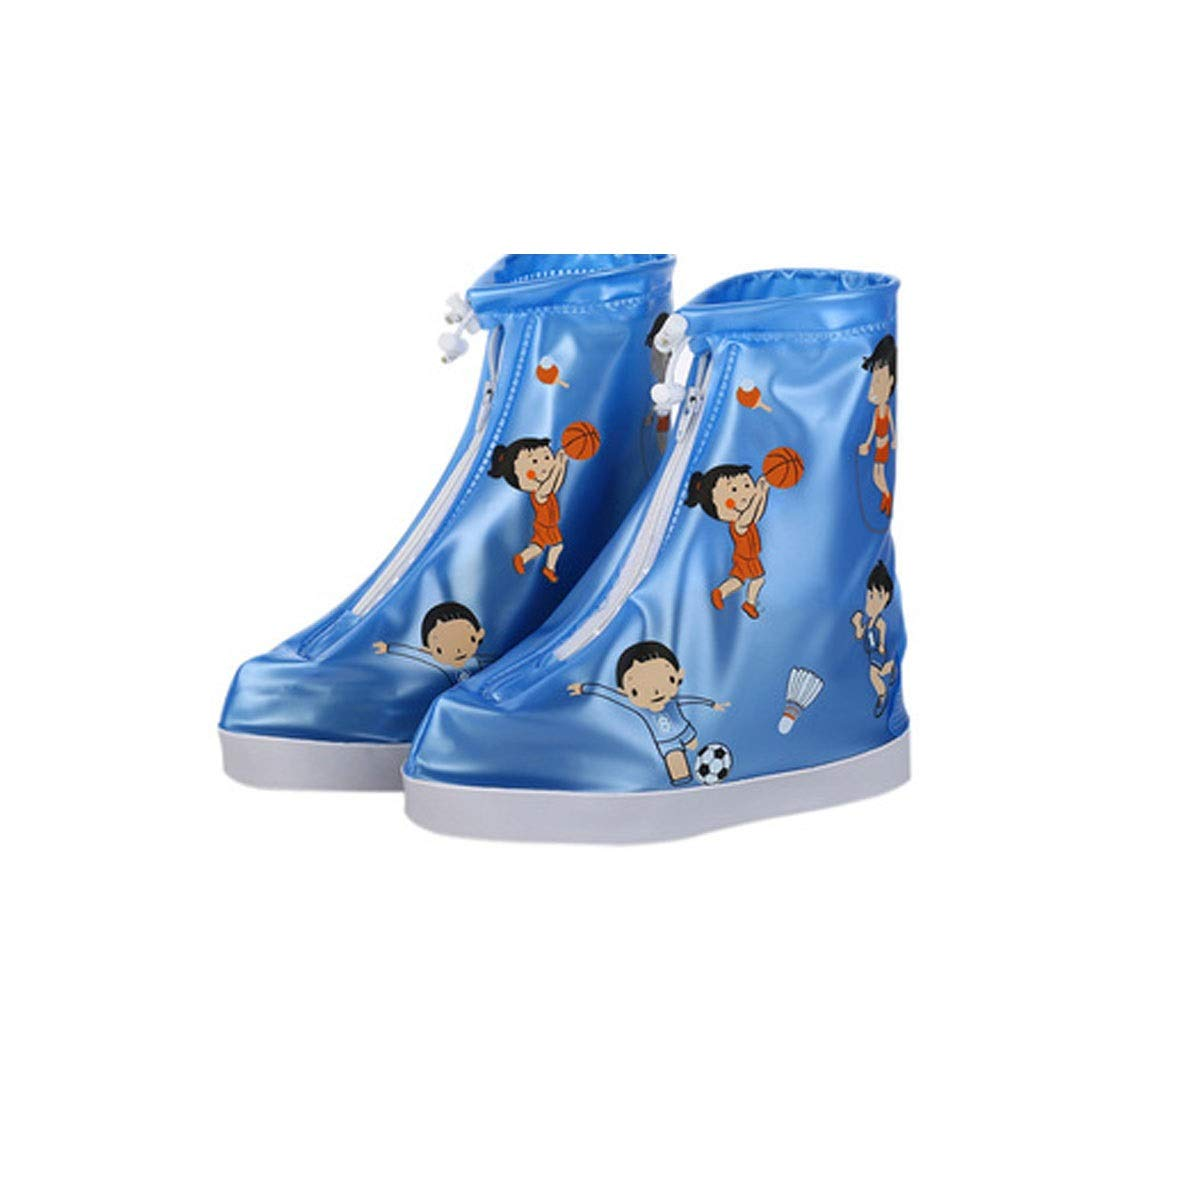 WUHUIZHENJINGXIAOBU Rain Boots, Non-Slip Thick Wear-Resistant Rubber Waterproof Rain Boots, White, Red, Blue, Pink Shoe Covers That can be Worn on Rainy Days, (Color : Blue, Size : S)